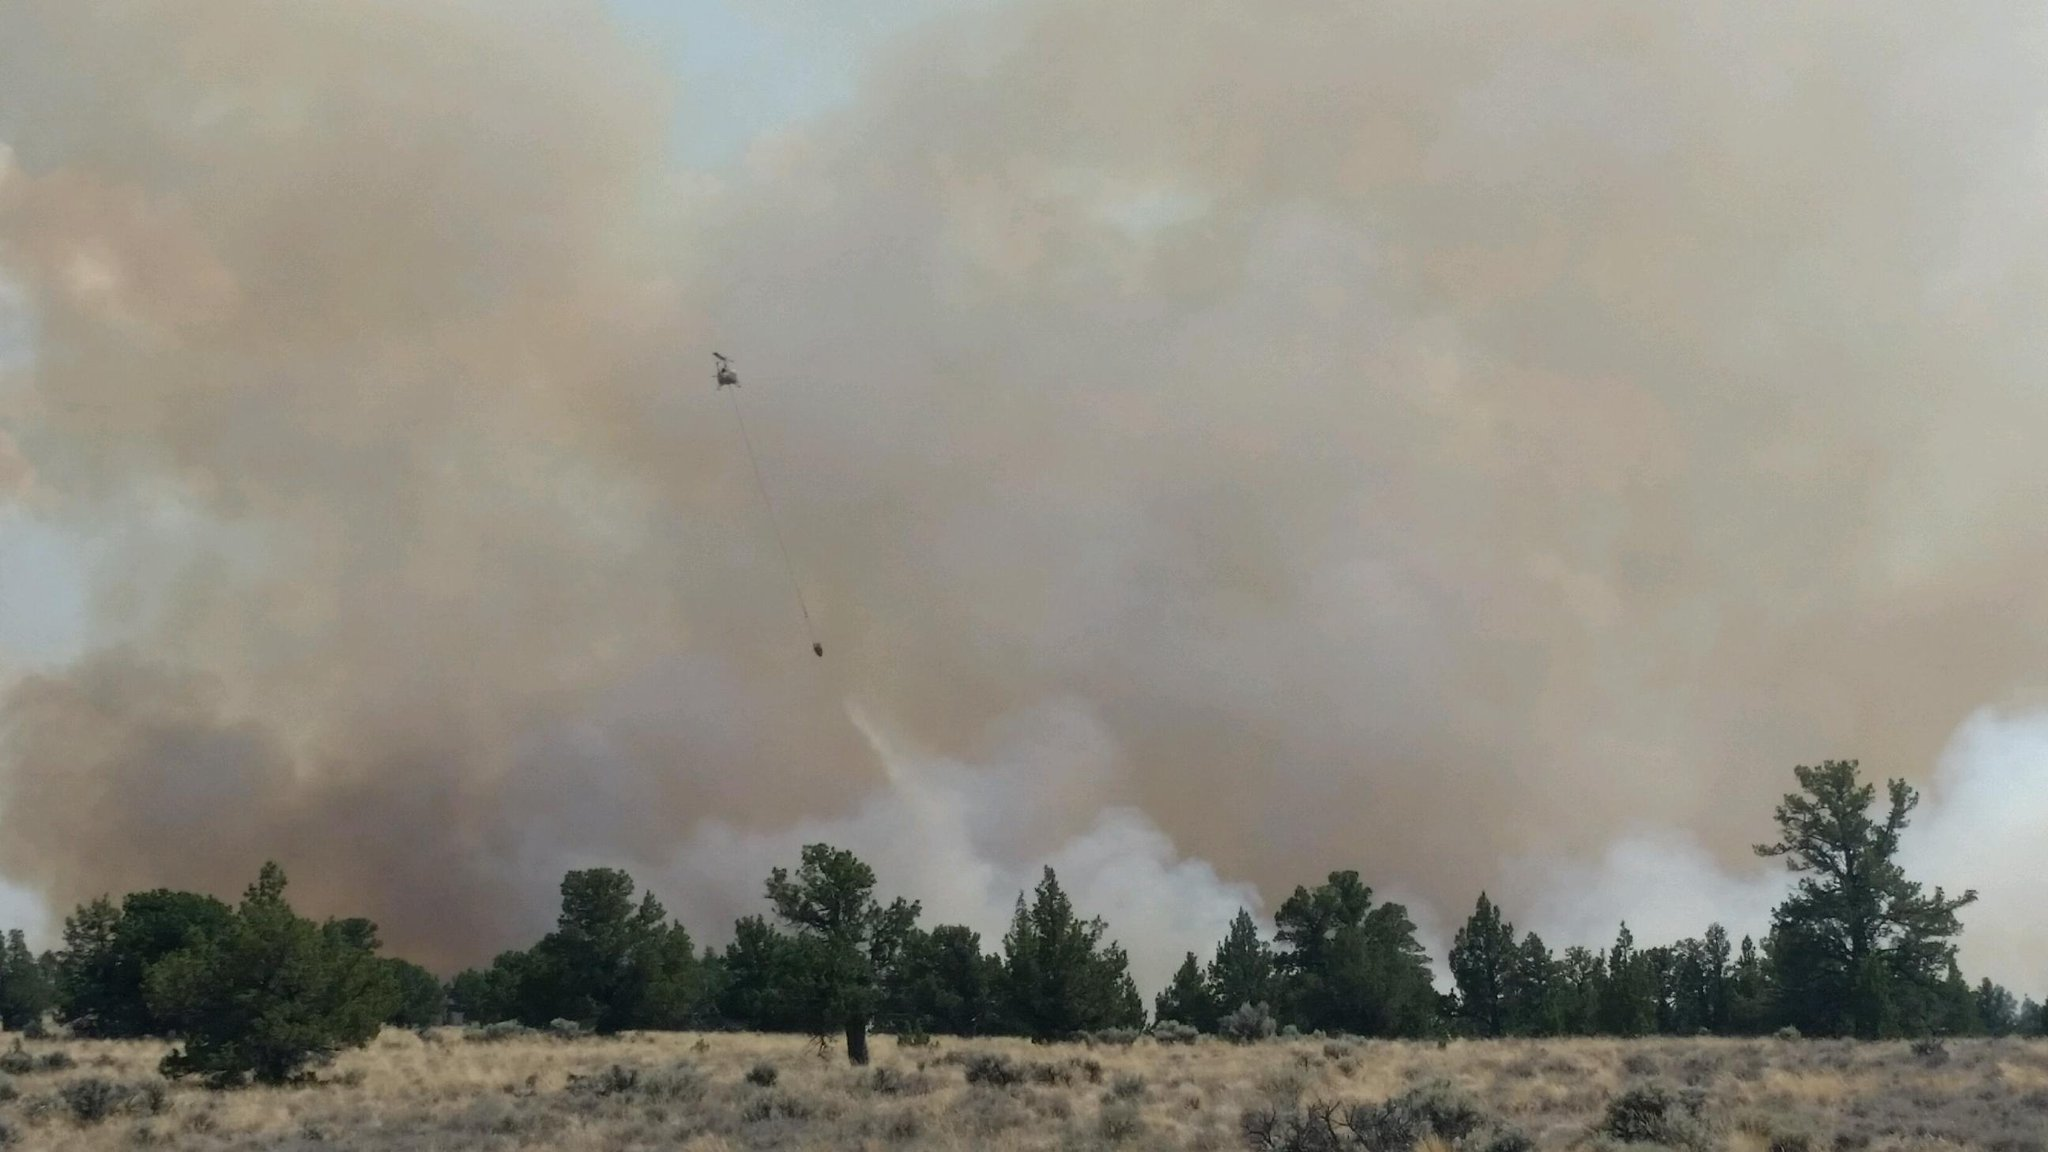 A fire closed Highway 20 near the Lake and Harney county line on Wednesday. The highway connects Bend with Burns in Oregon's high desert. (Harney County Sheriff's Office photo)